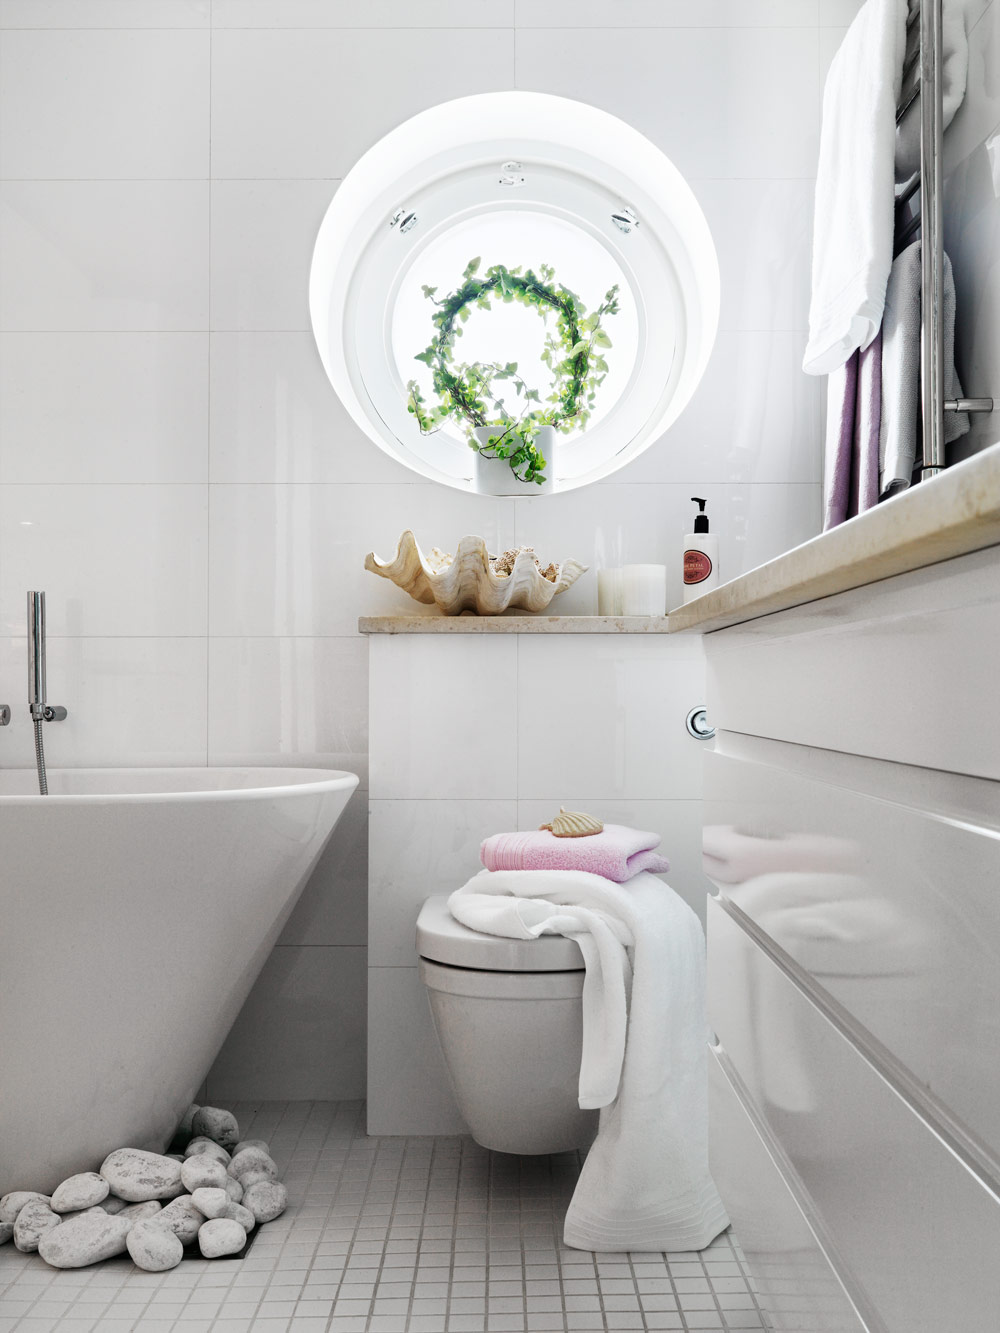 Stylish small bathroom with an unusual decor digsdigs for Design your bathroom